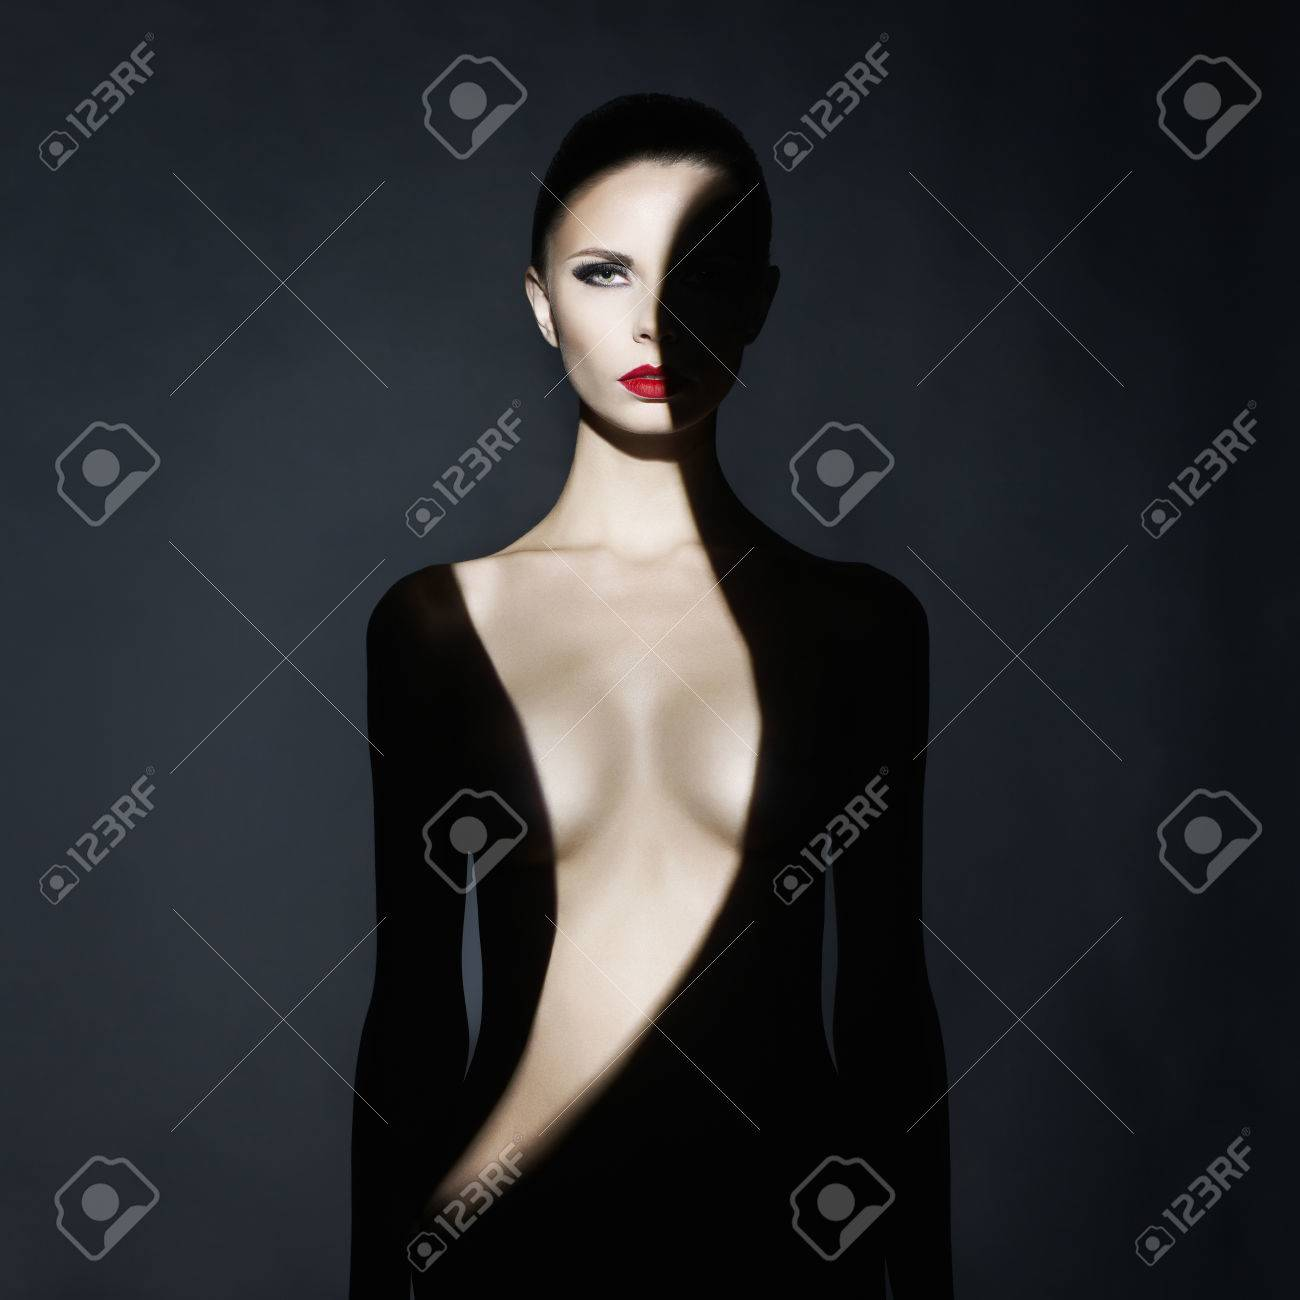 Fashion art studio portrait of elegant naked lady with shadow on her body Standard-Bild - 42834124